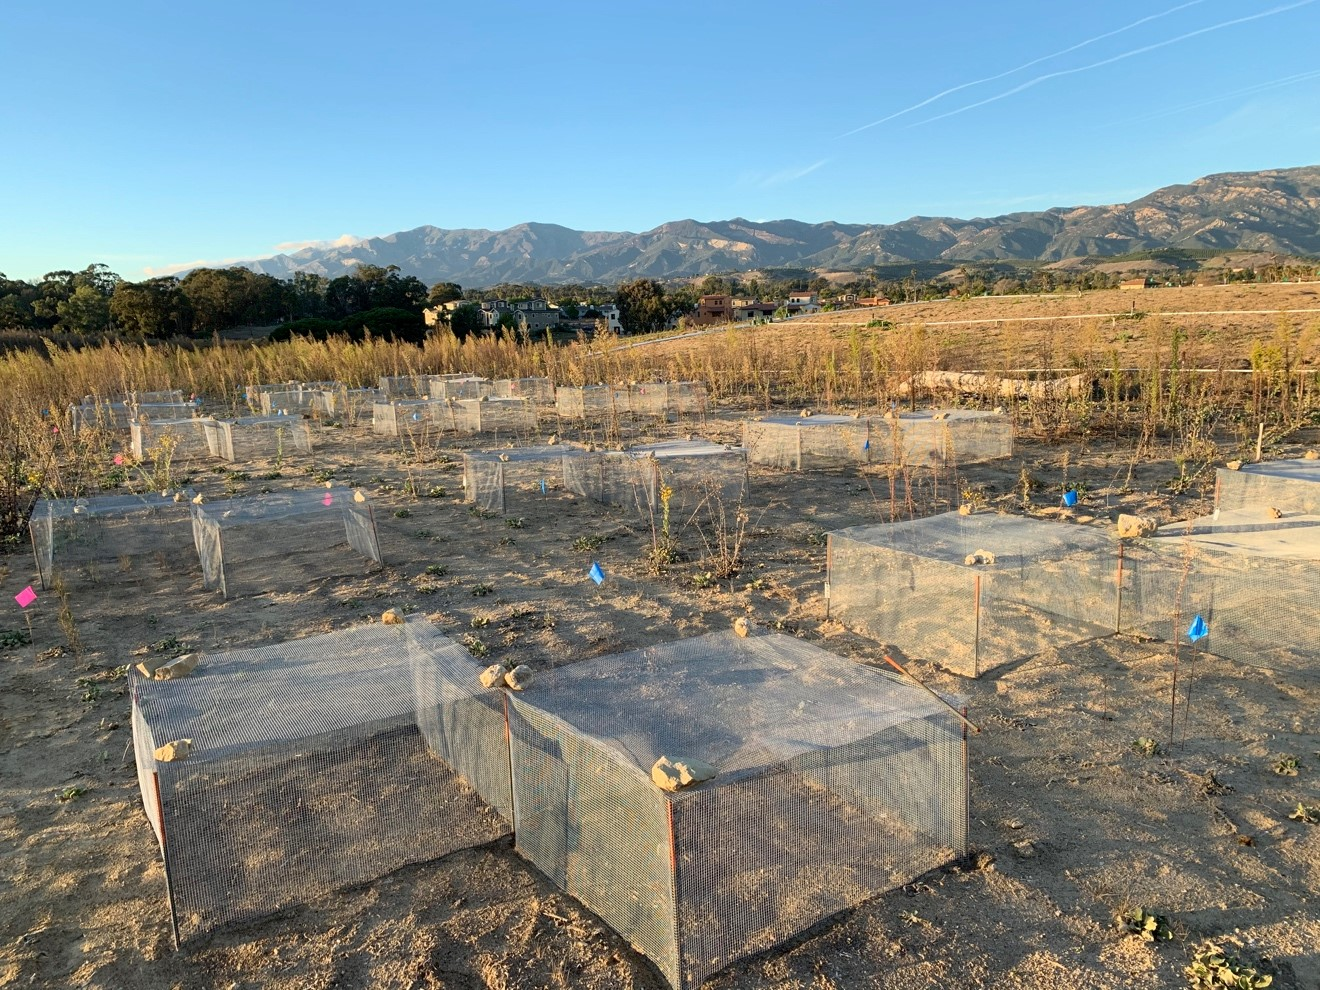 Experimental plots with cages on the eastern slope (left image) and sandy soils on the western side (right image) of the NCOS Mesa.